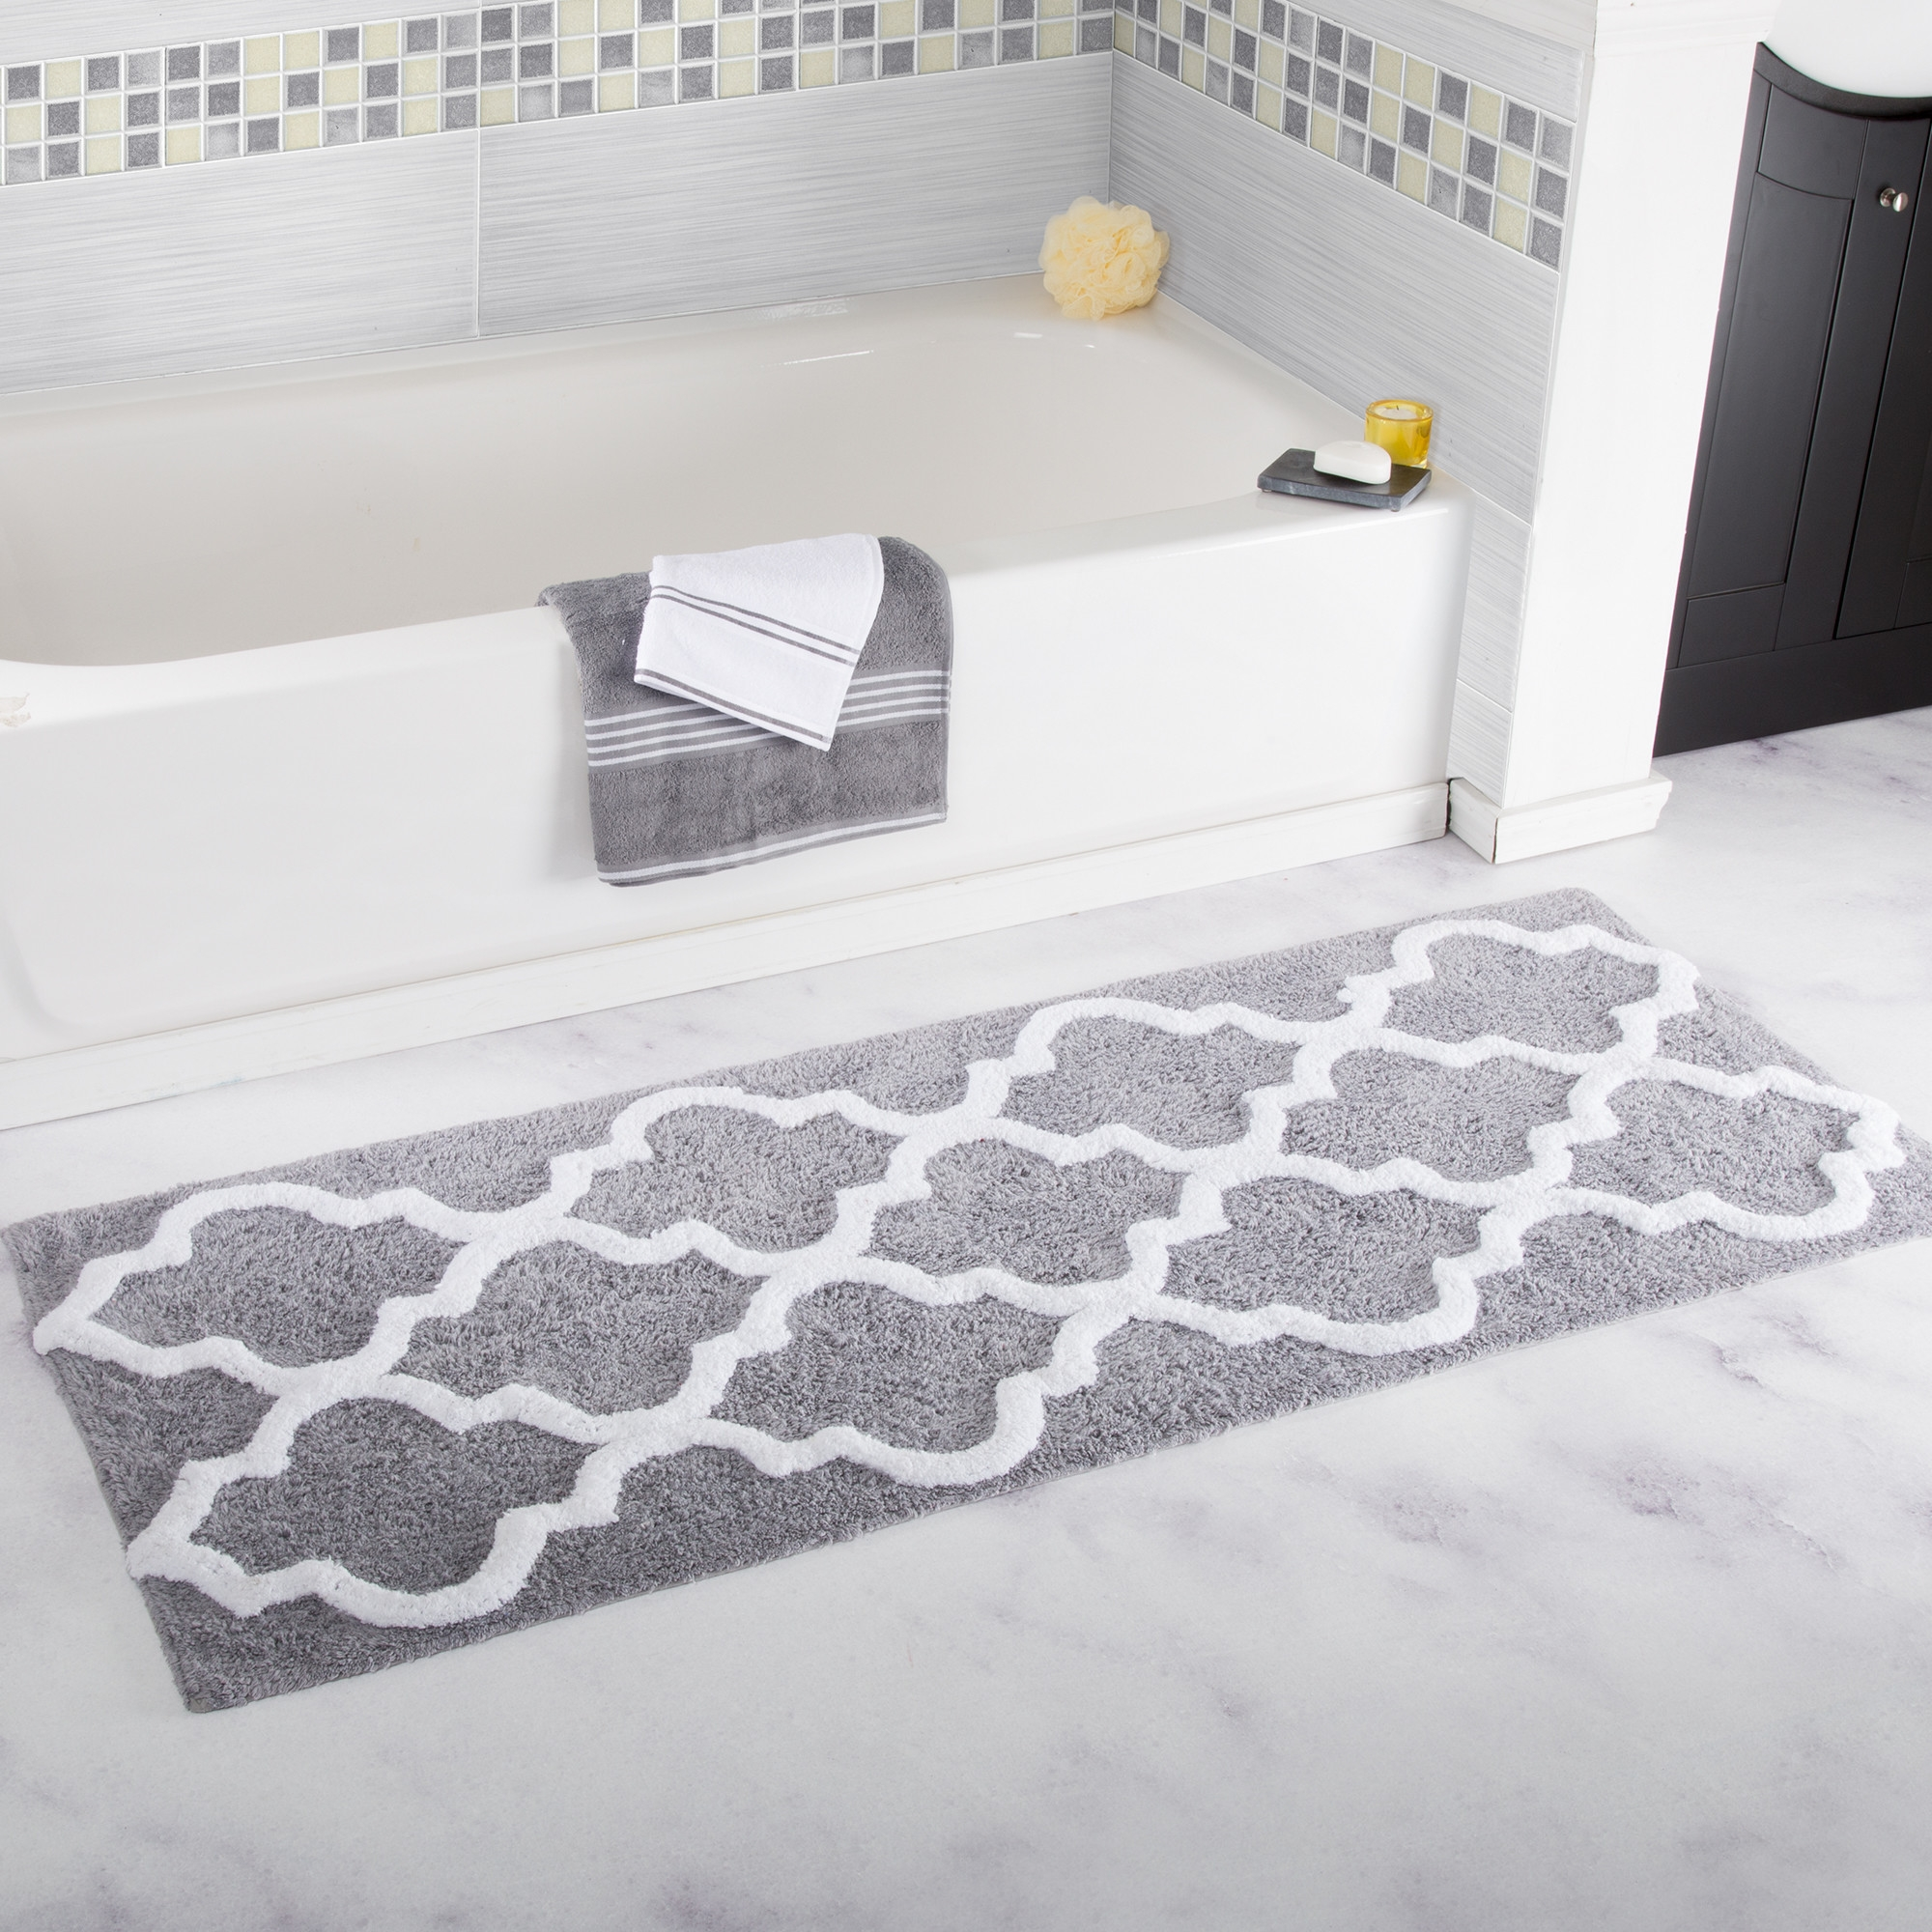 Oversized Cotton Bath Mats